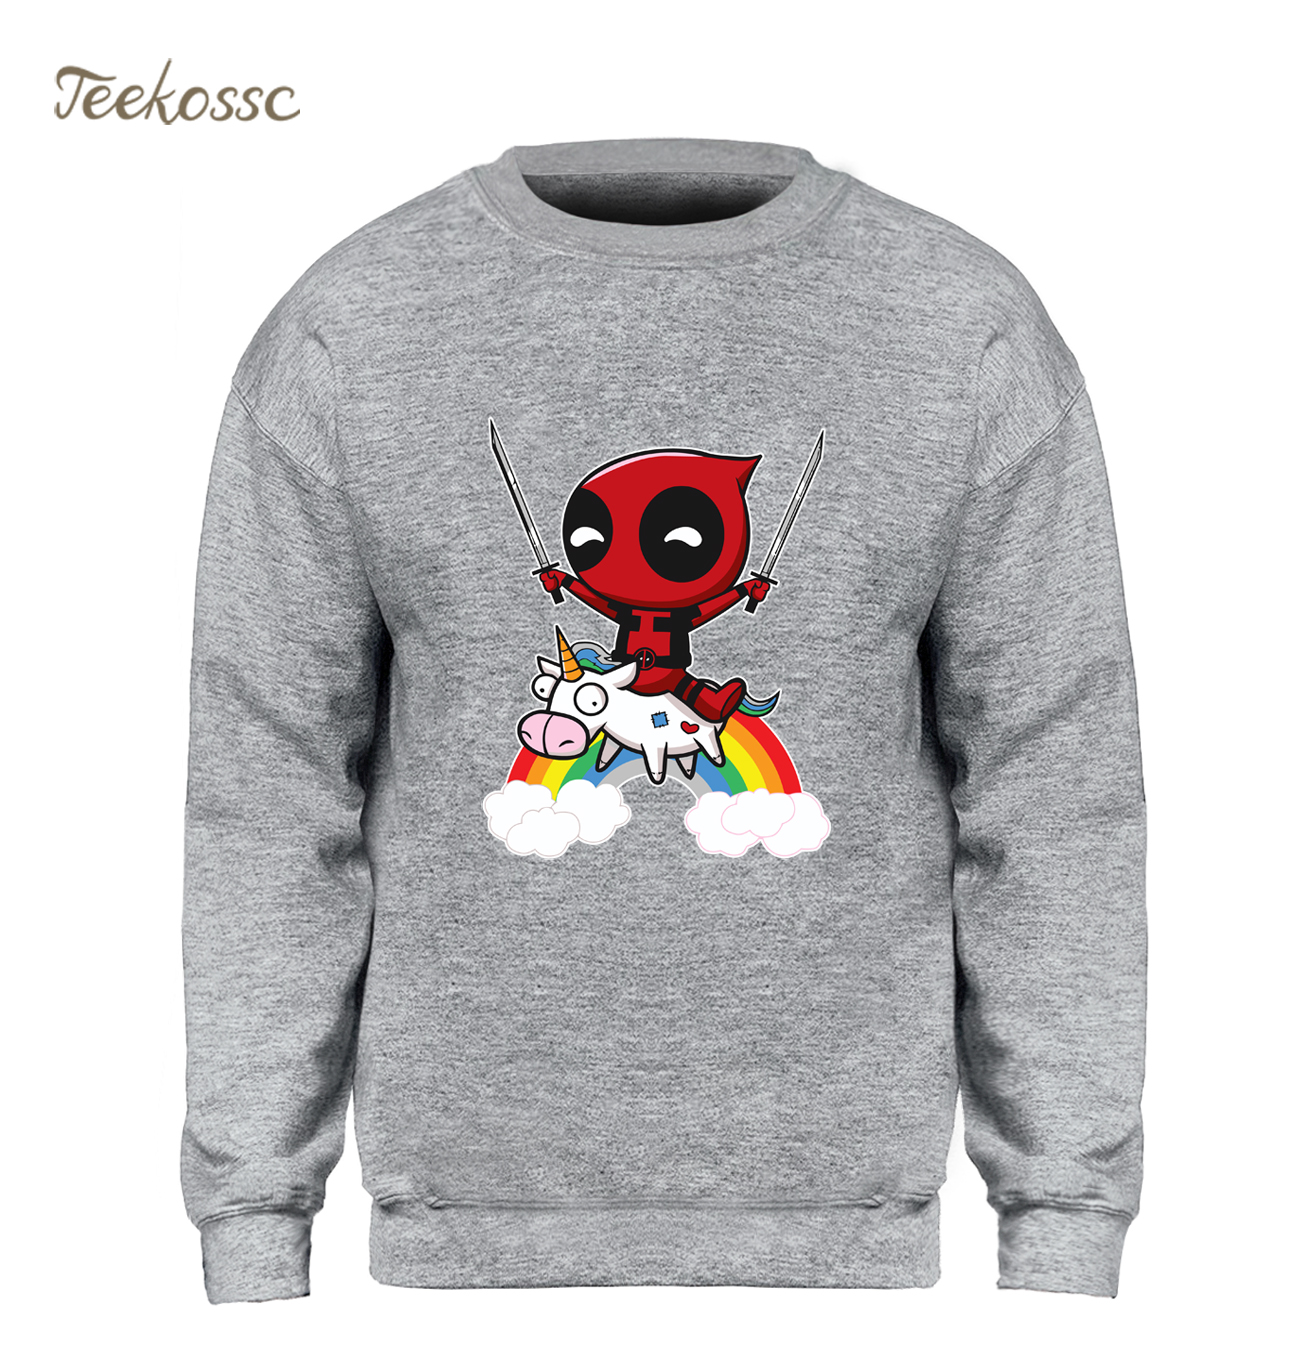 Deadpool Sweatshirt Men Funny Print Hoodie Crewneck Sweatshirts Winter Autumn Black Dead Pool Super Hero Hipster Brand Clothing